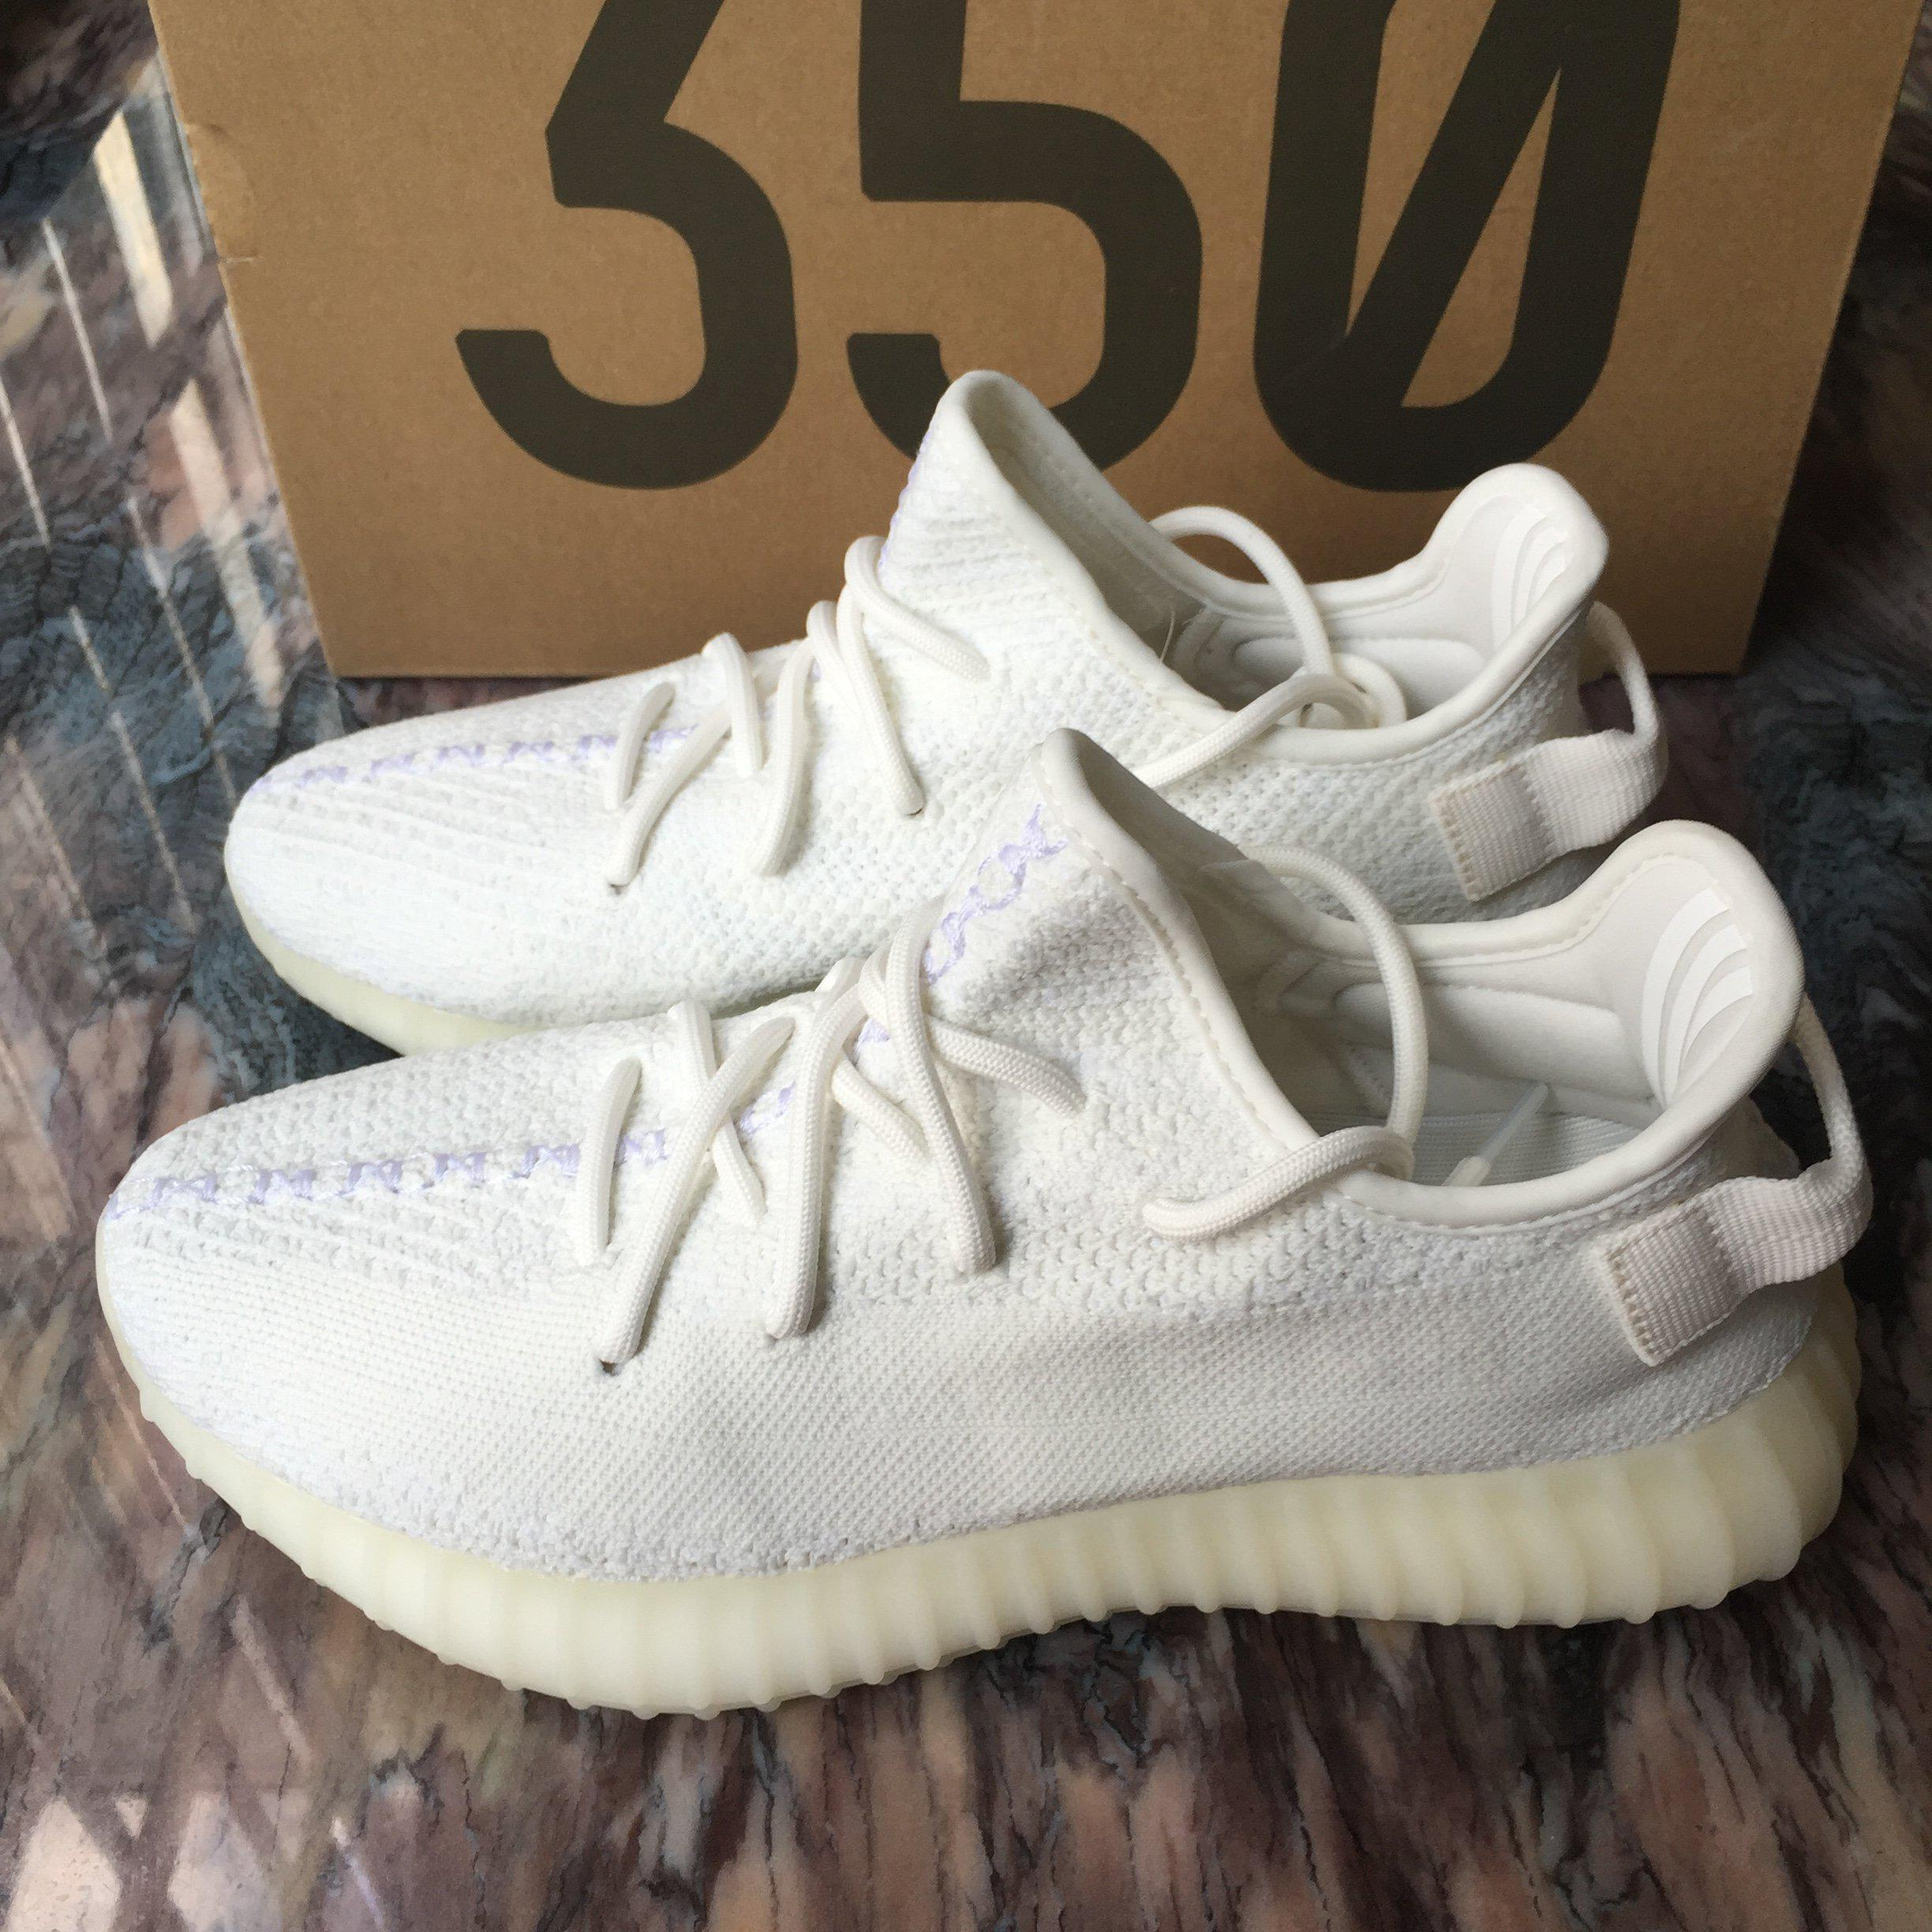 Image of Adidas Yeezy Boost 350 V2 Cream White 2017 Low SPLY Kanye West CP9366 AUTHENTIC